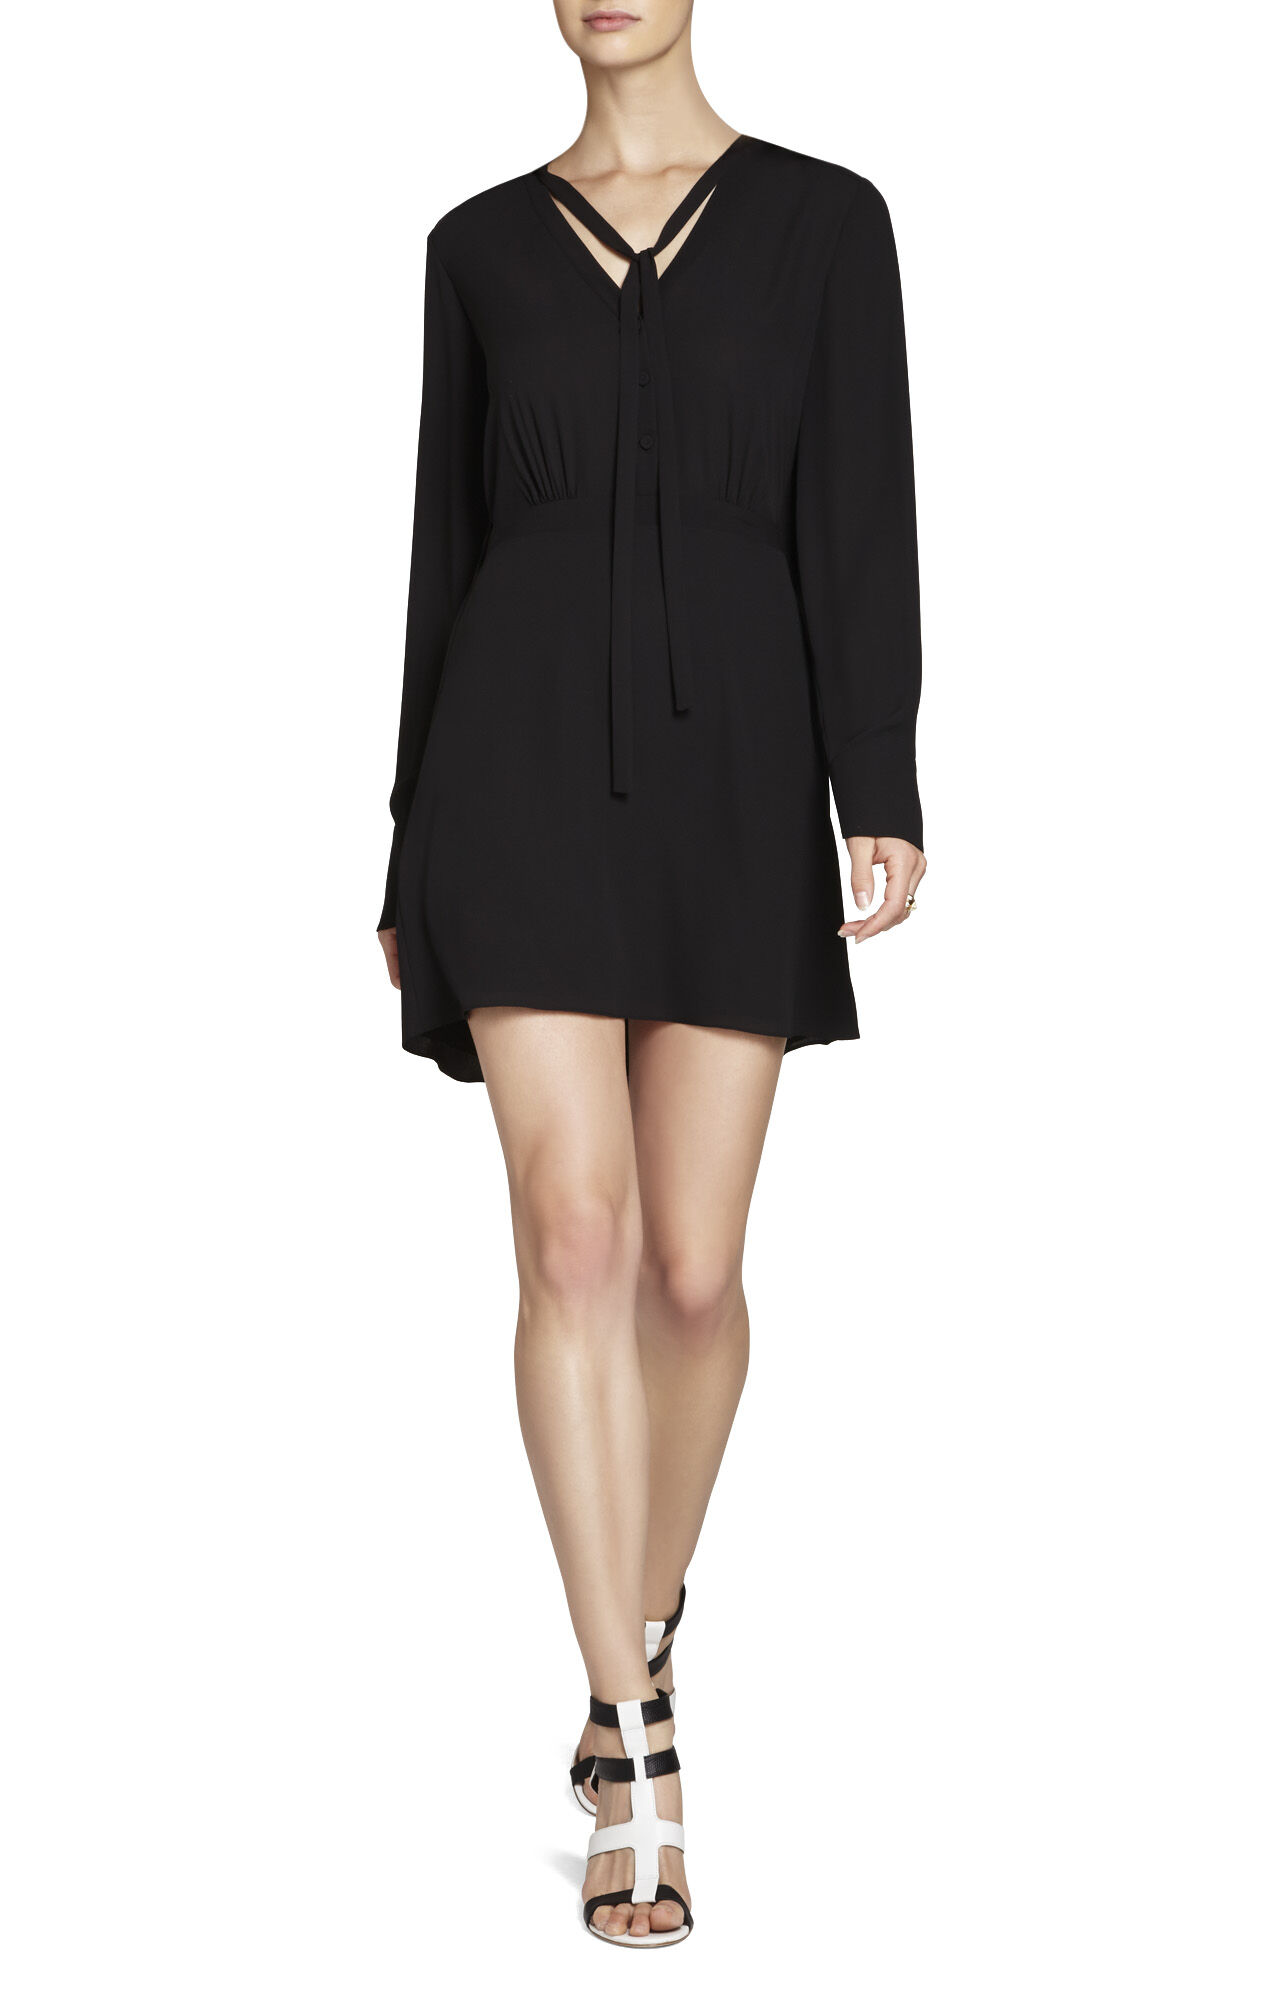 Lani Long-Sleeve Blouse Dress